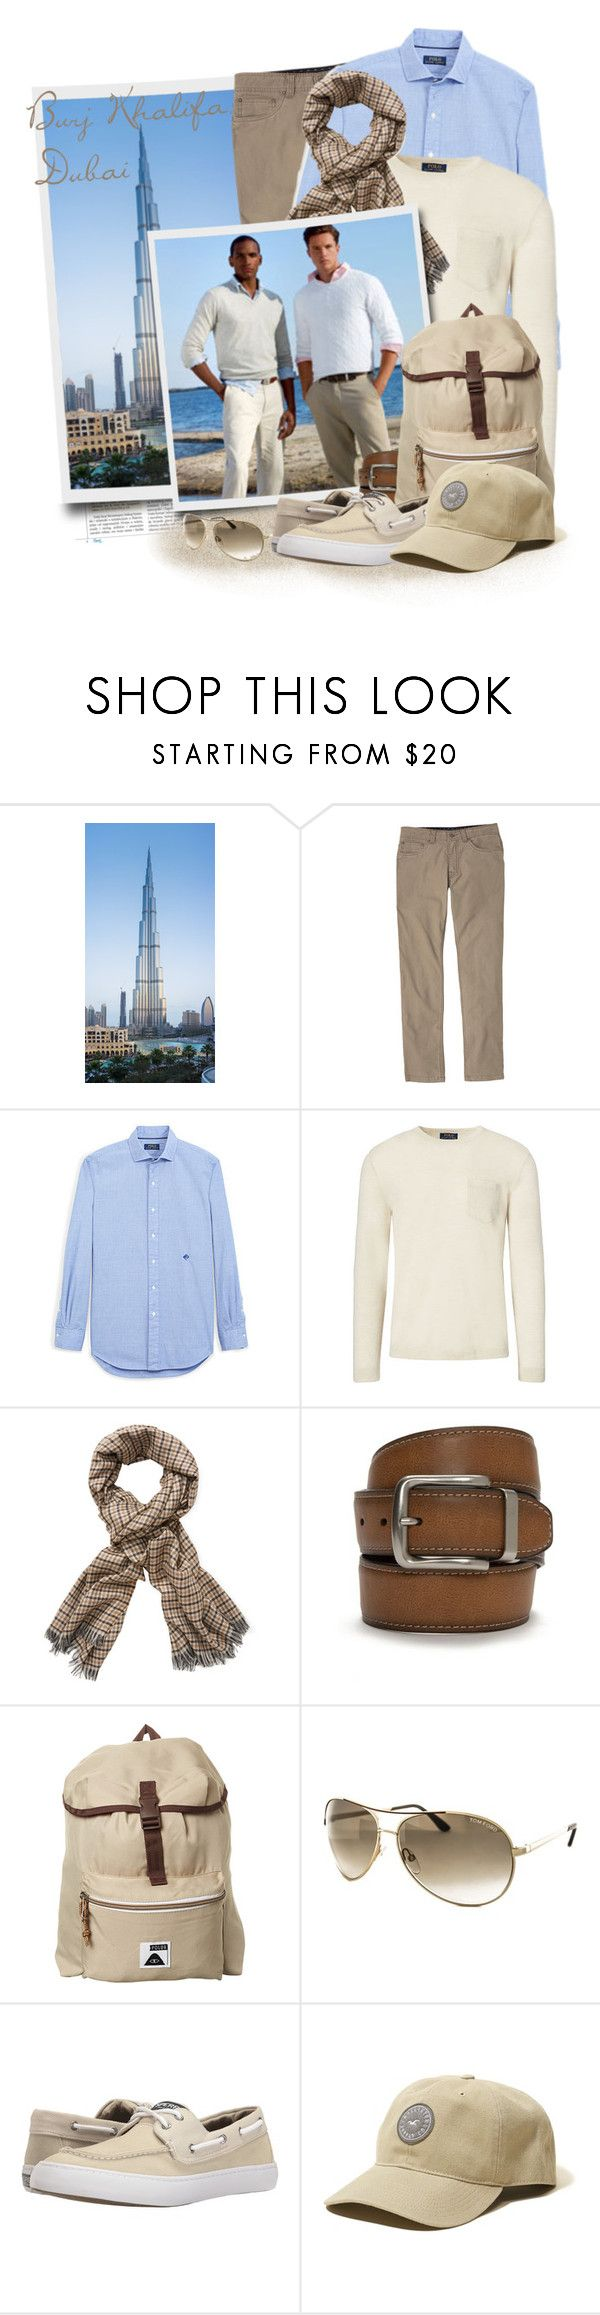 """Burj Khalifa (World's Tallest Building), Dubai,"" by tasha1973 ❤ liked on Polyvore featuring prAna, Ralph Lauren, Tom Ford, Columbia, Poler, Sperry, Hollister Co., men's fashion and menswear"